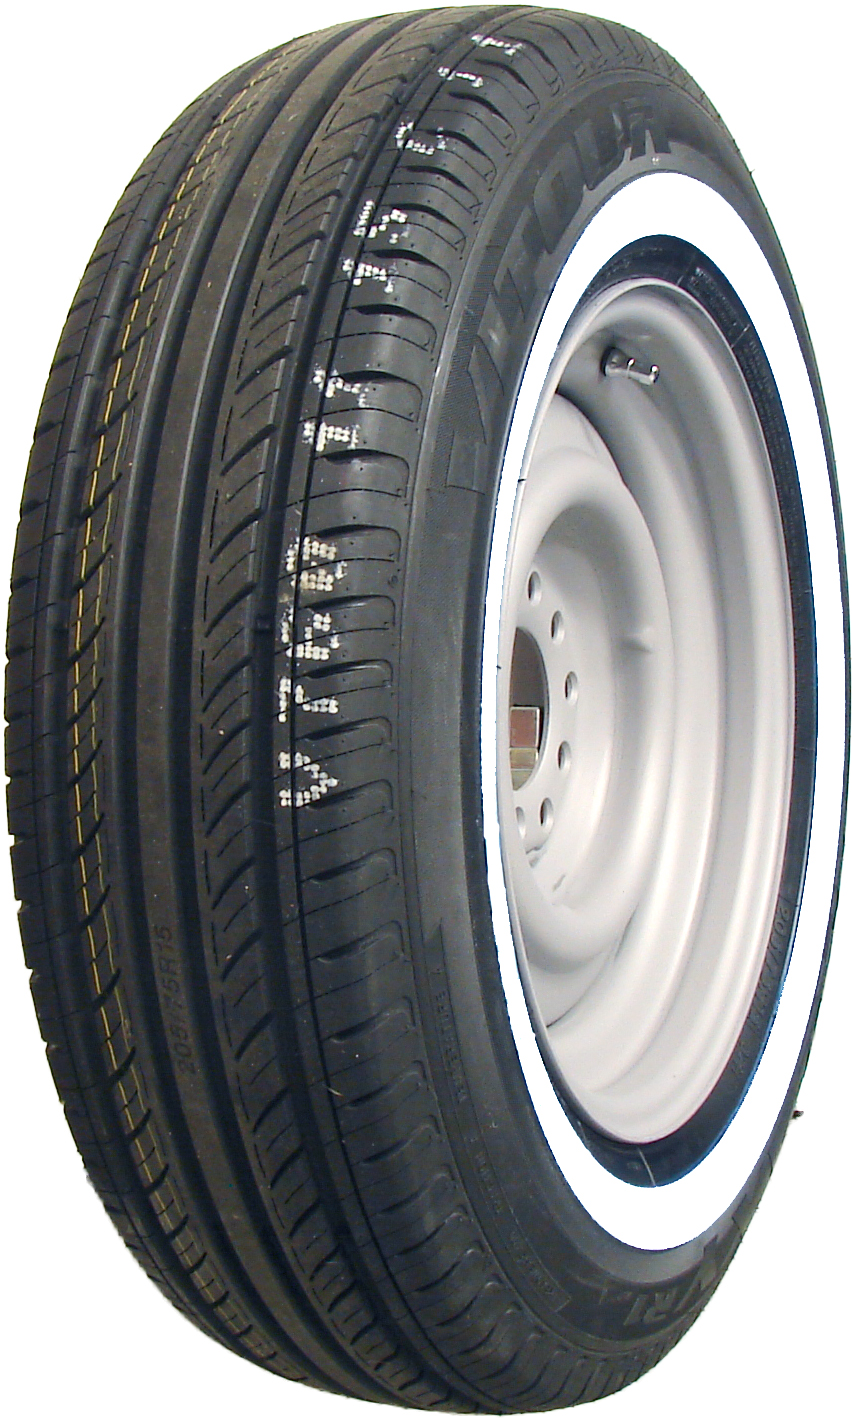 Galaxy White Wall Tyres | Tyre Choice